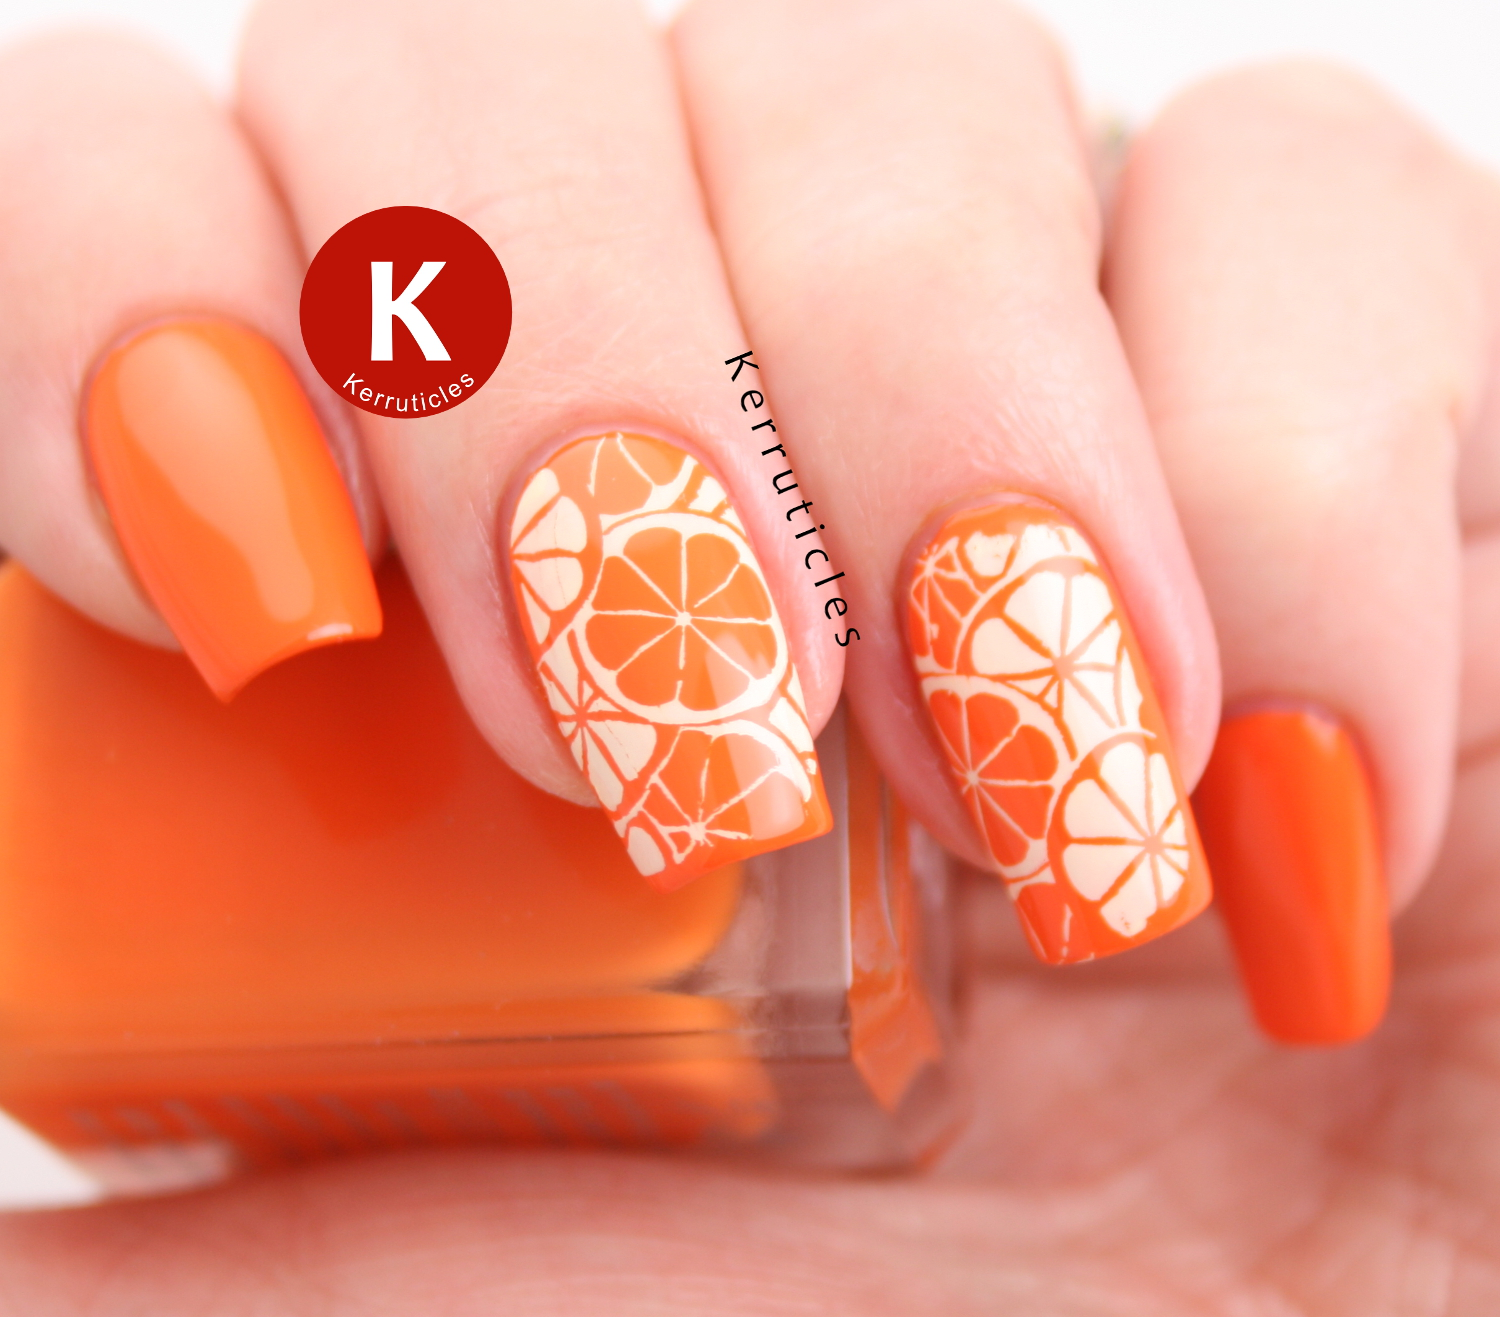 Citrus nails: are they oranges or lemons?